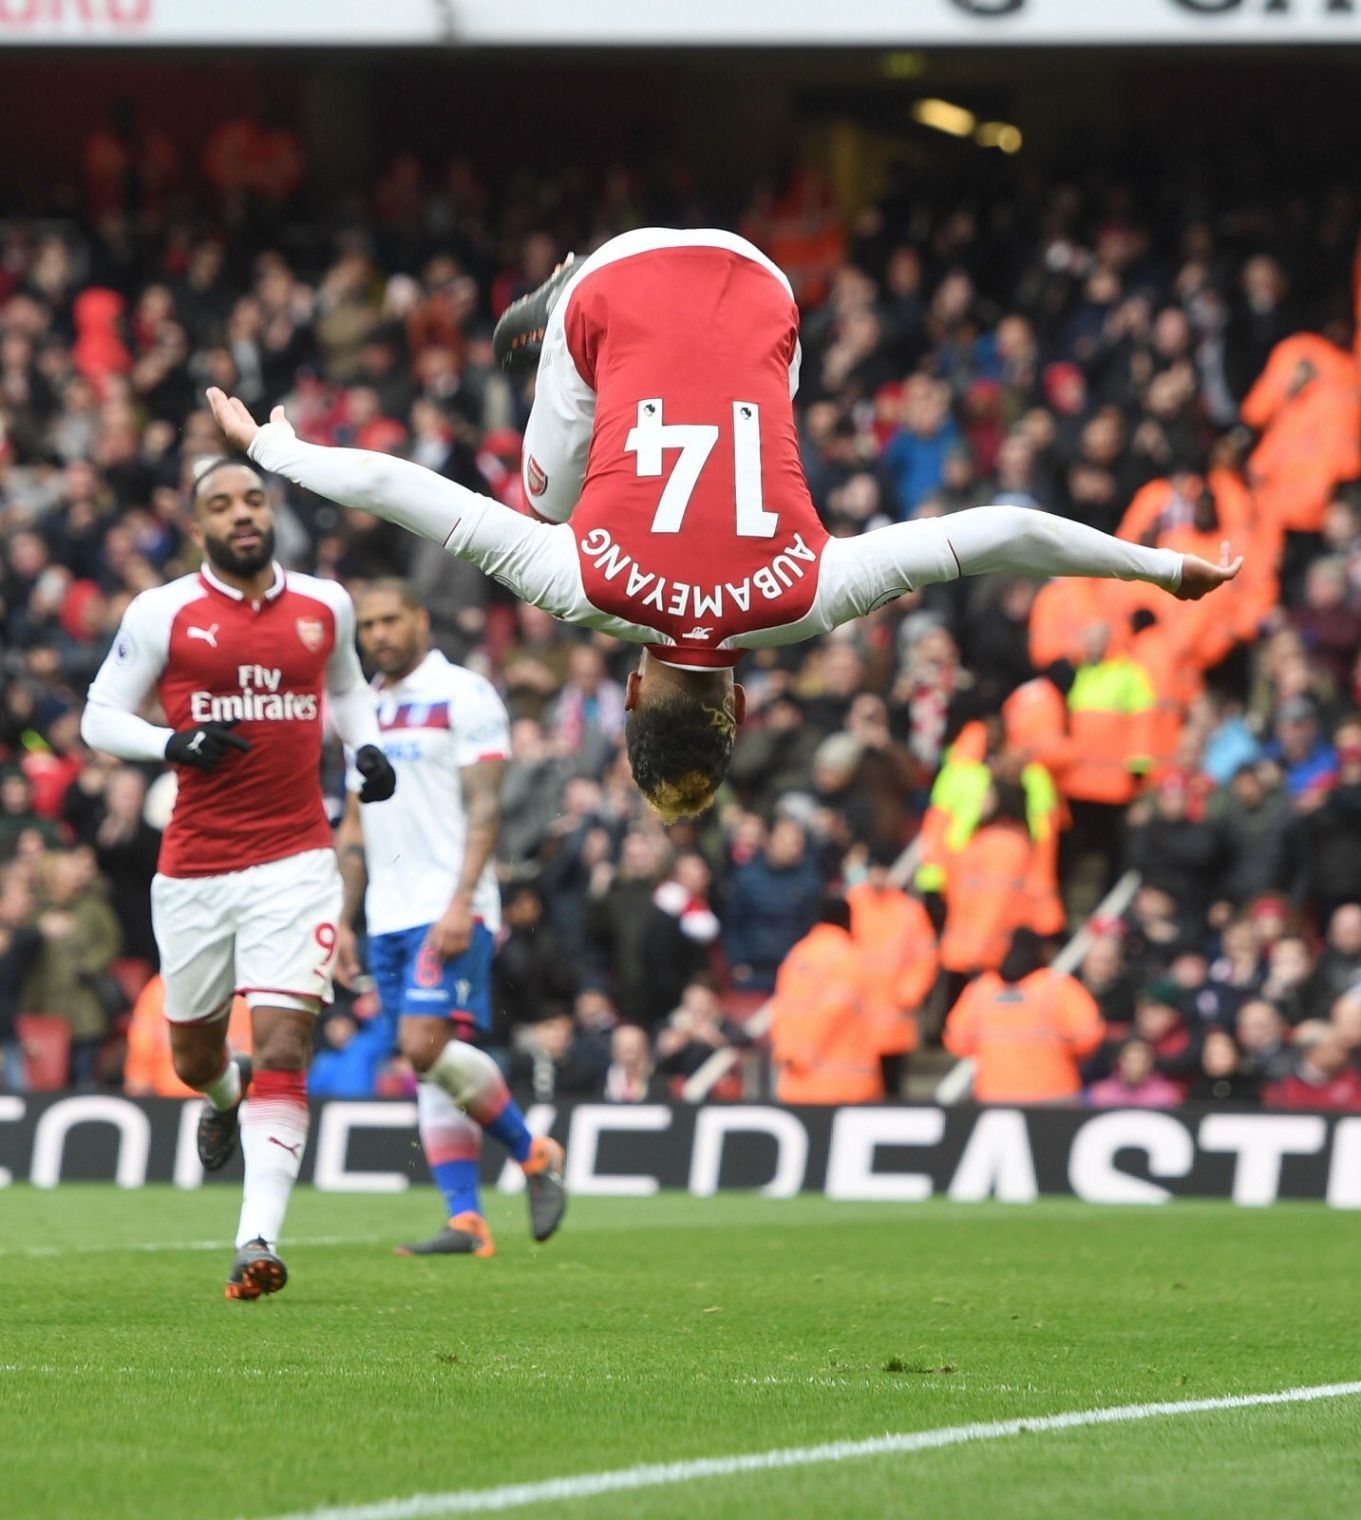 Soccer Skills One Of The Greatest Sports On Earth Is Soccer Otherwise Known As Football In Most Countries Stoke City Premier League Goals Arsenal Goal